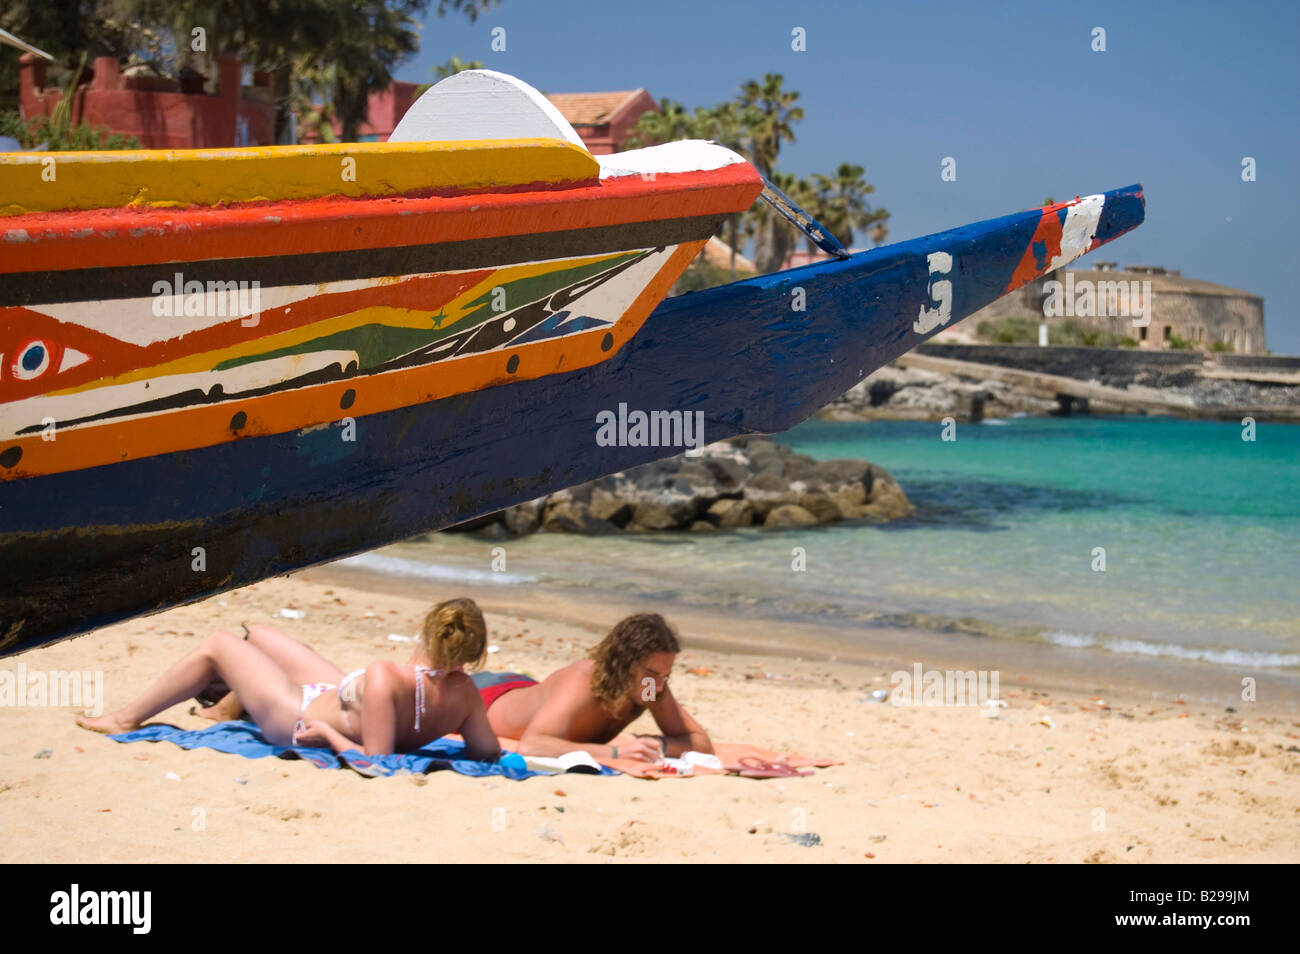 Sunbathers beside a pirogue boat Date 20 02 2008 Ref ZB583 110492 0031 COMPULSORY CREDIT World Pictures Photoshot - Stock Image